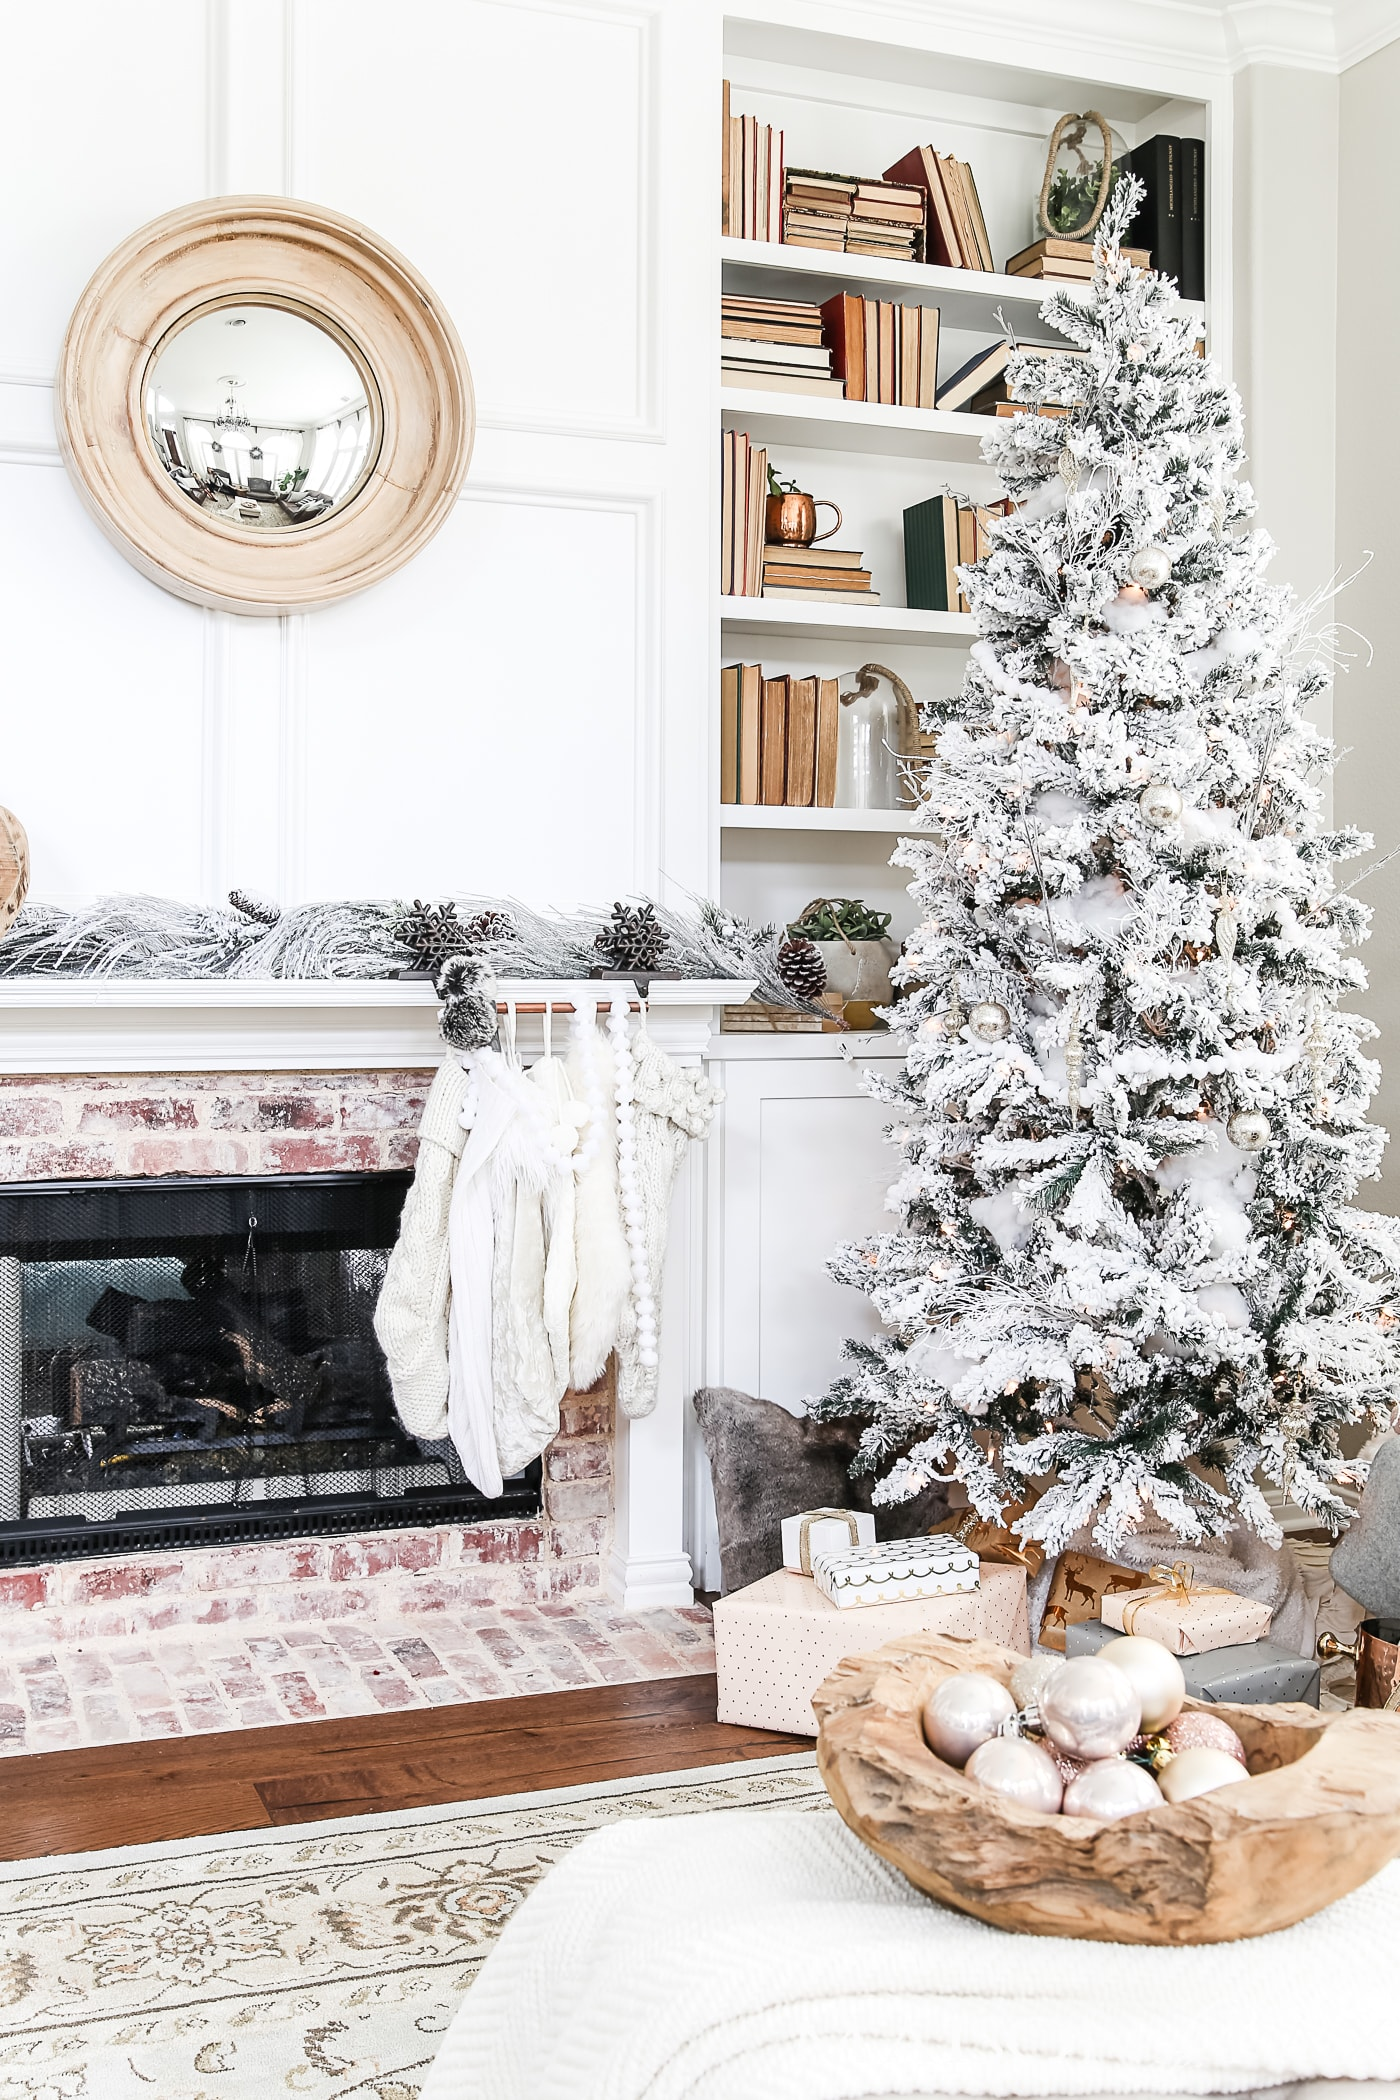 These Simple Holiday Decorating Ideas In This Christmas Home Tour Will Help You Focus On What Really Matters Season